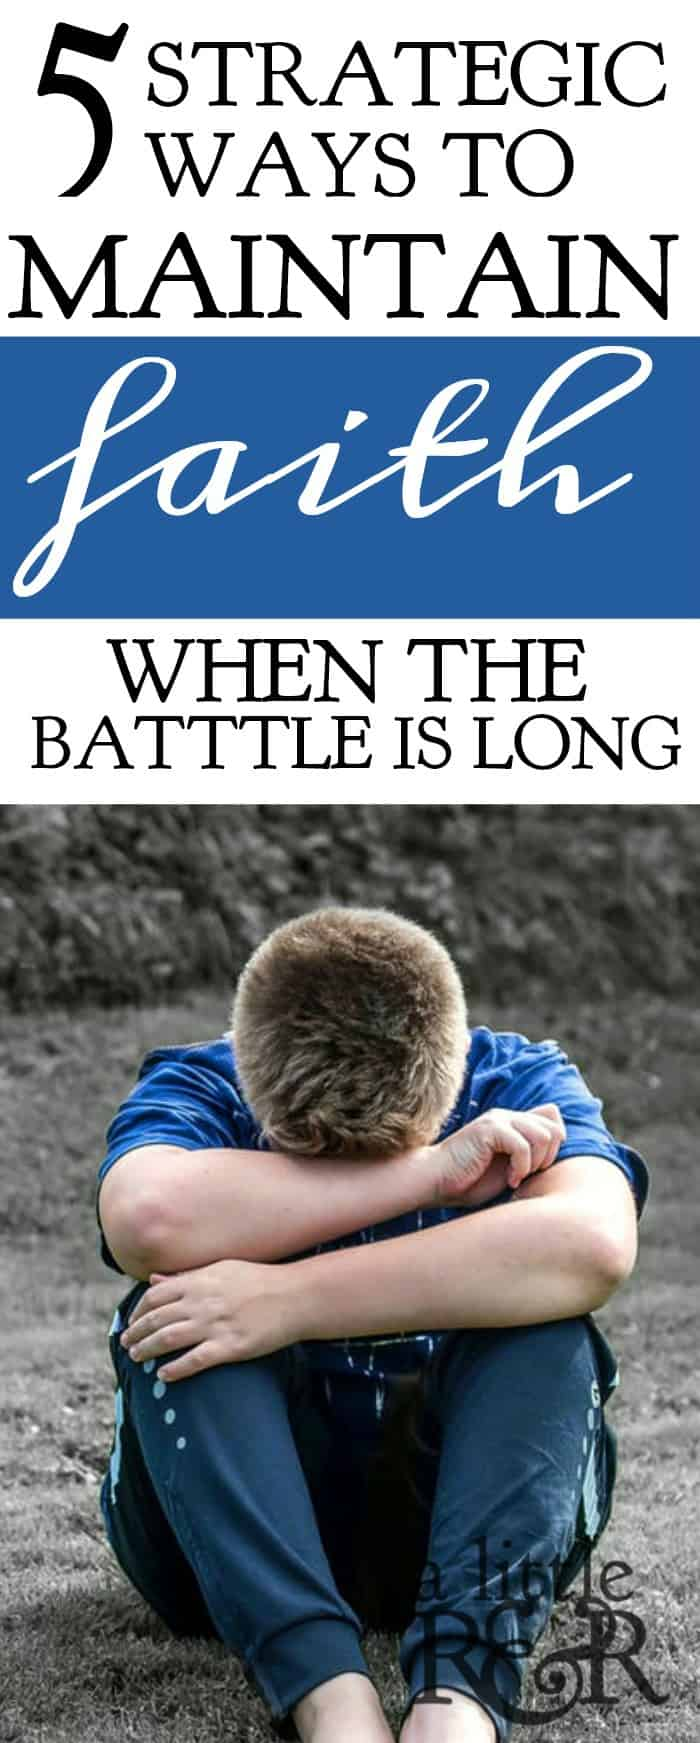 5 Strategic Ways to Maintain Faith When the Battle Is Long. It is really hard to keep fighting when the battle is long and you grow tired and weary of fighting. Here are 5 things we learn from David's battle with Goliath that encourage us to maintain faith and joy in the battle. #faith #Bible #Christianliving #Christian #Jesus #warroom